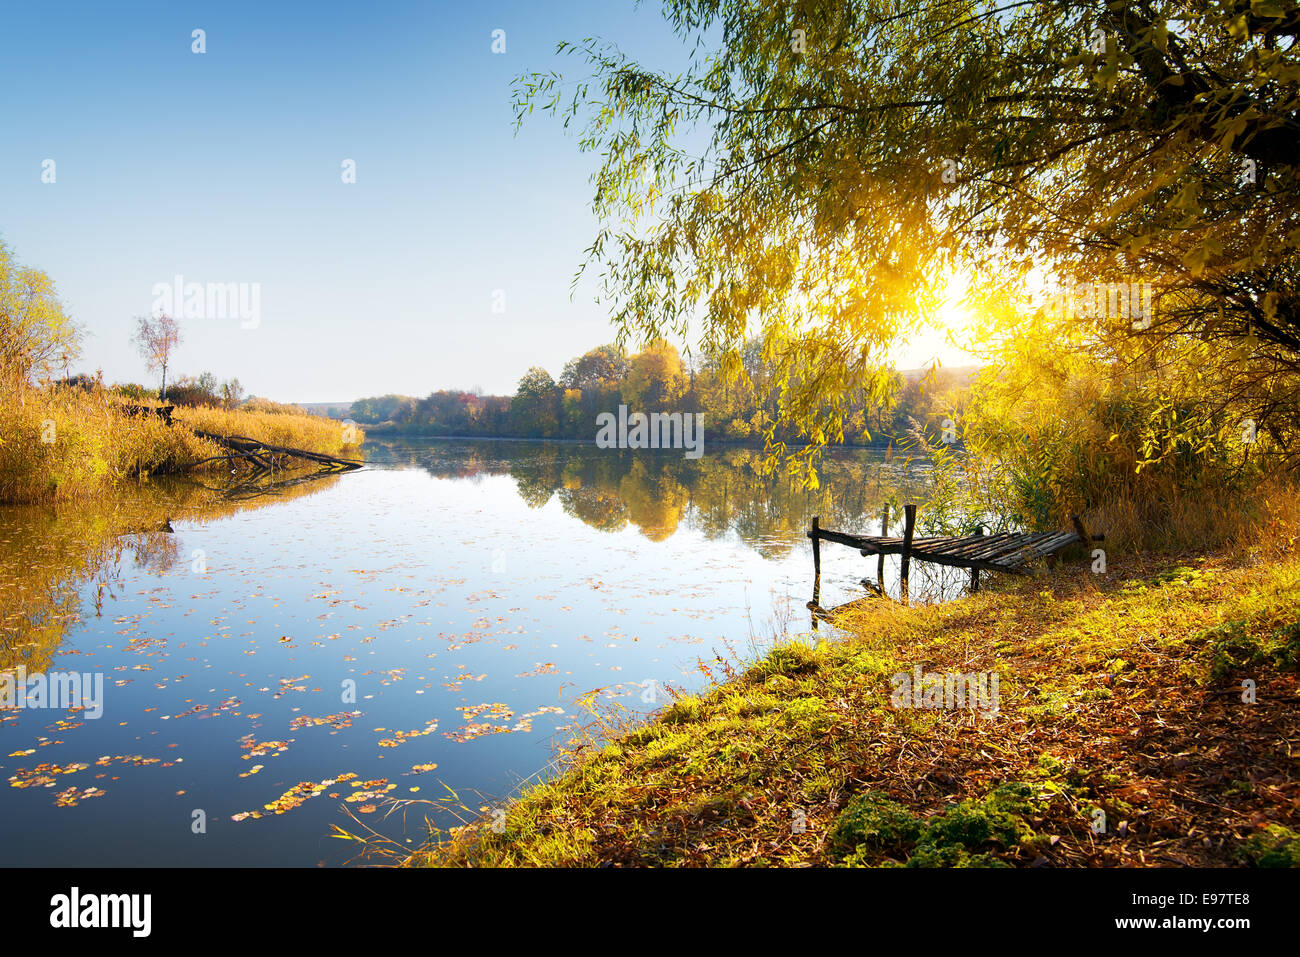 Calm river and autumn forest at sunrise - Stock Image